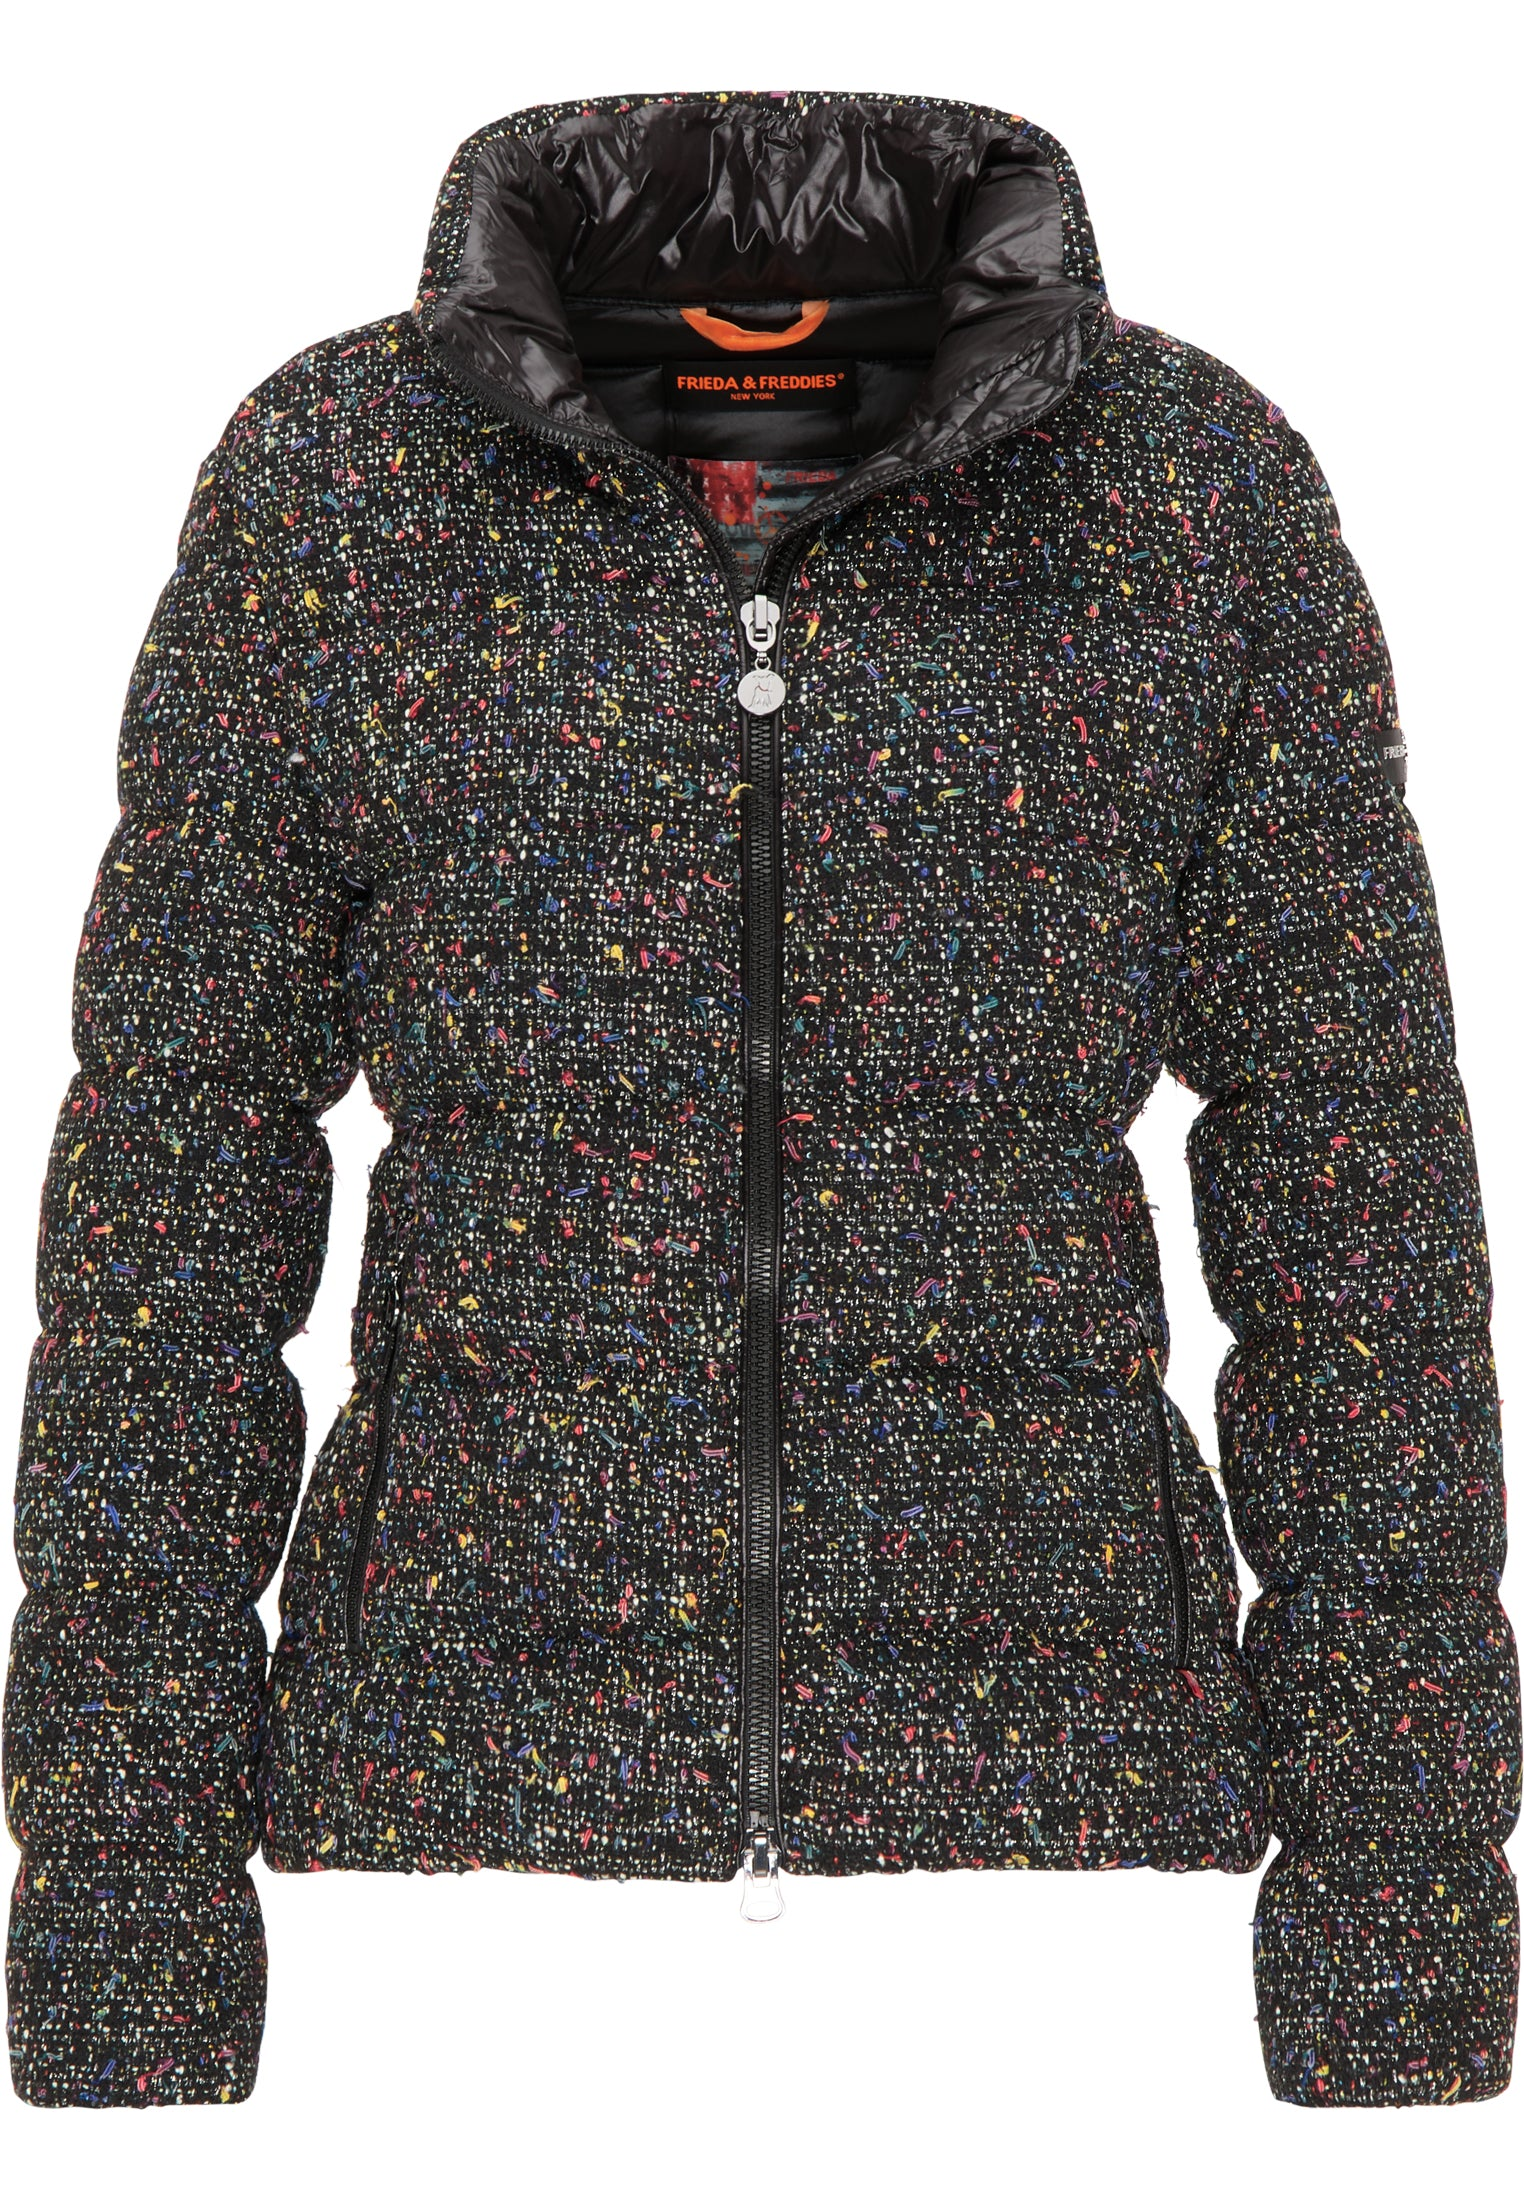 Frieda & Freddies Tweed Puffer Jacket